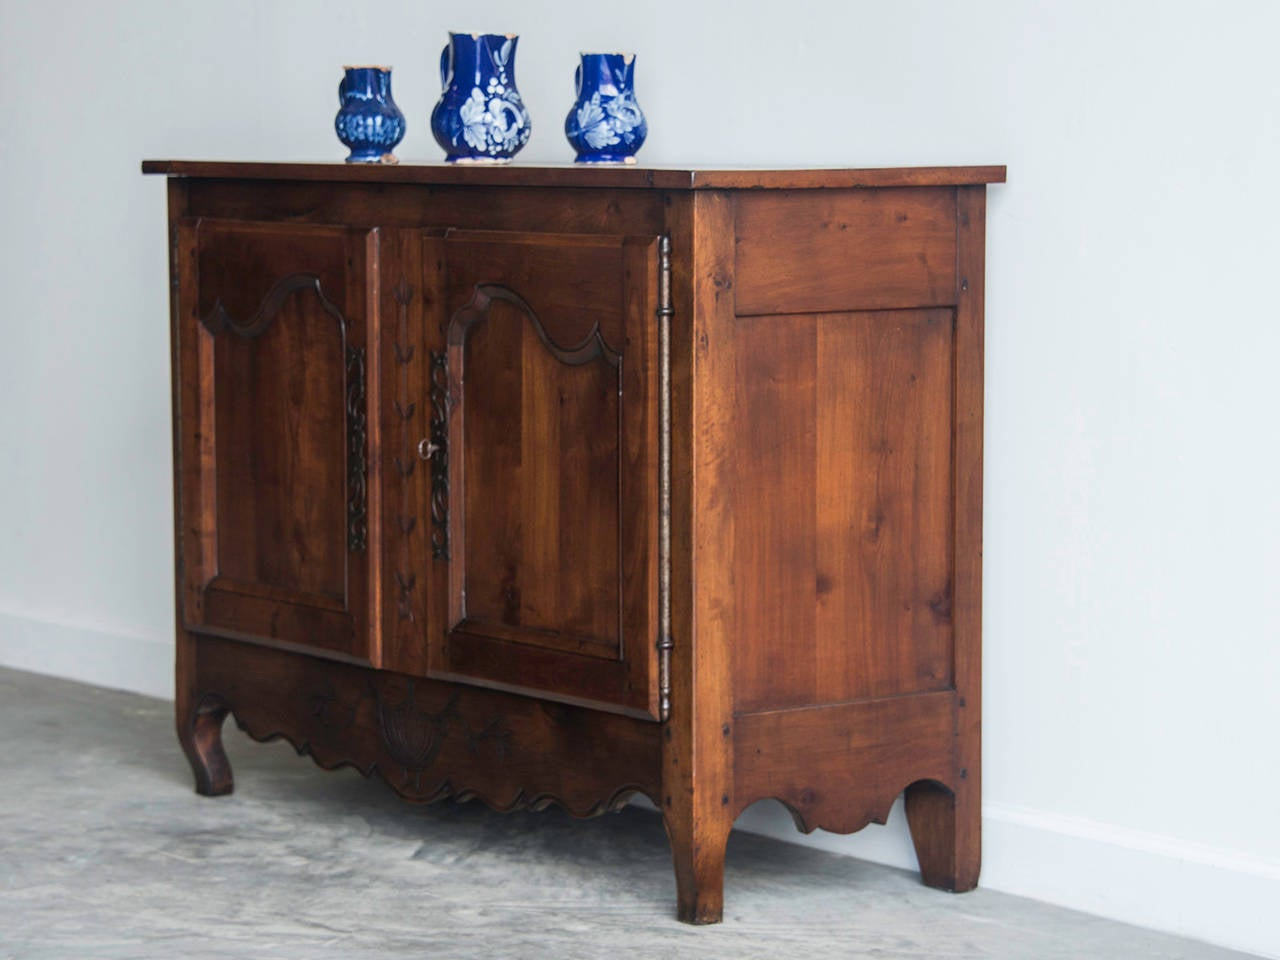 antique french transitional period cherrywood buffet bas d 39 armoire circa 1775 at 1stdibs. Black Bedroom Furniture Sets. Home Design Ideas